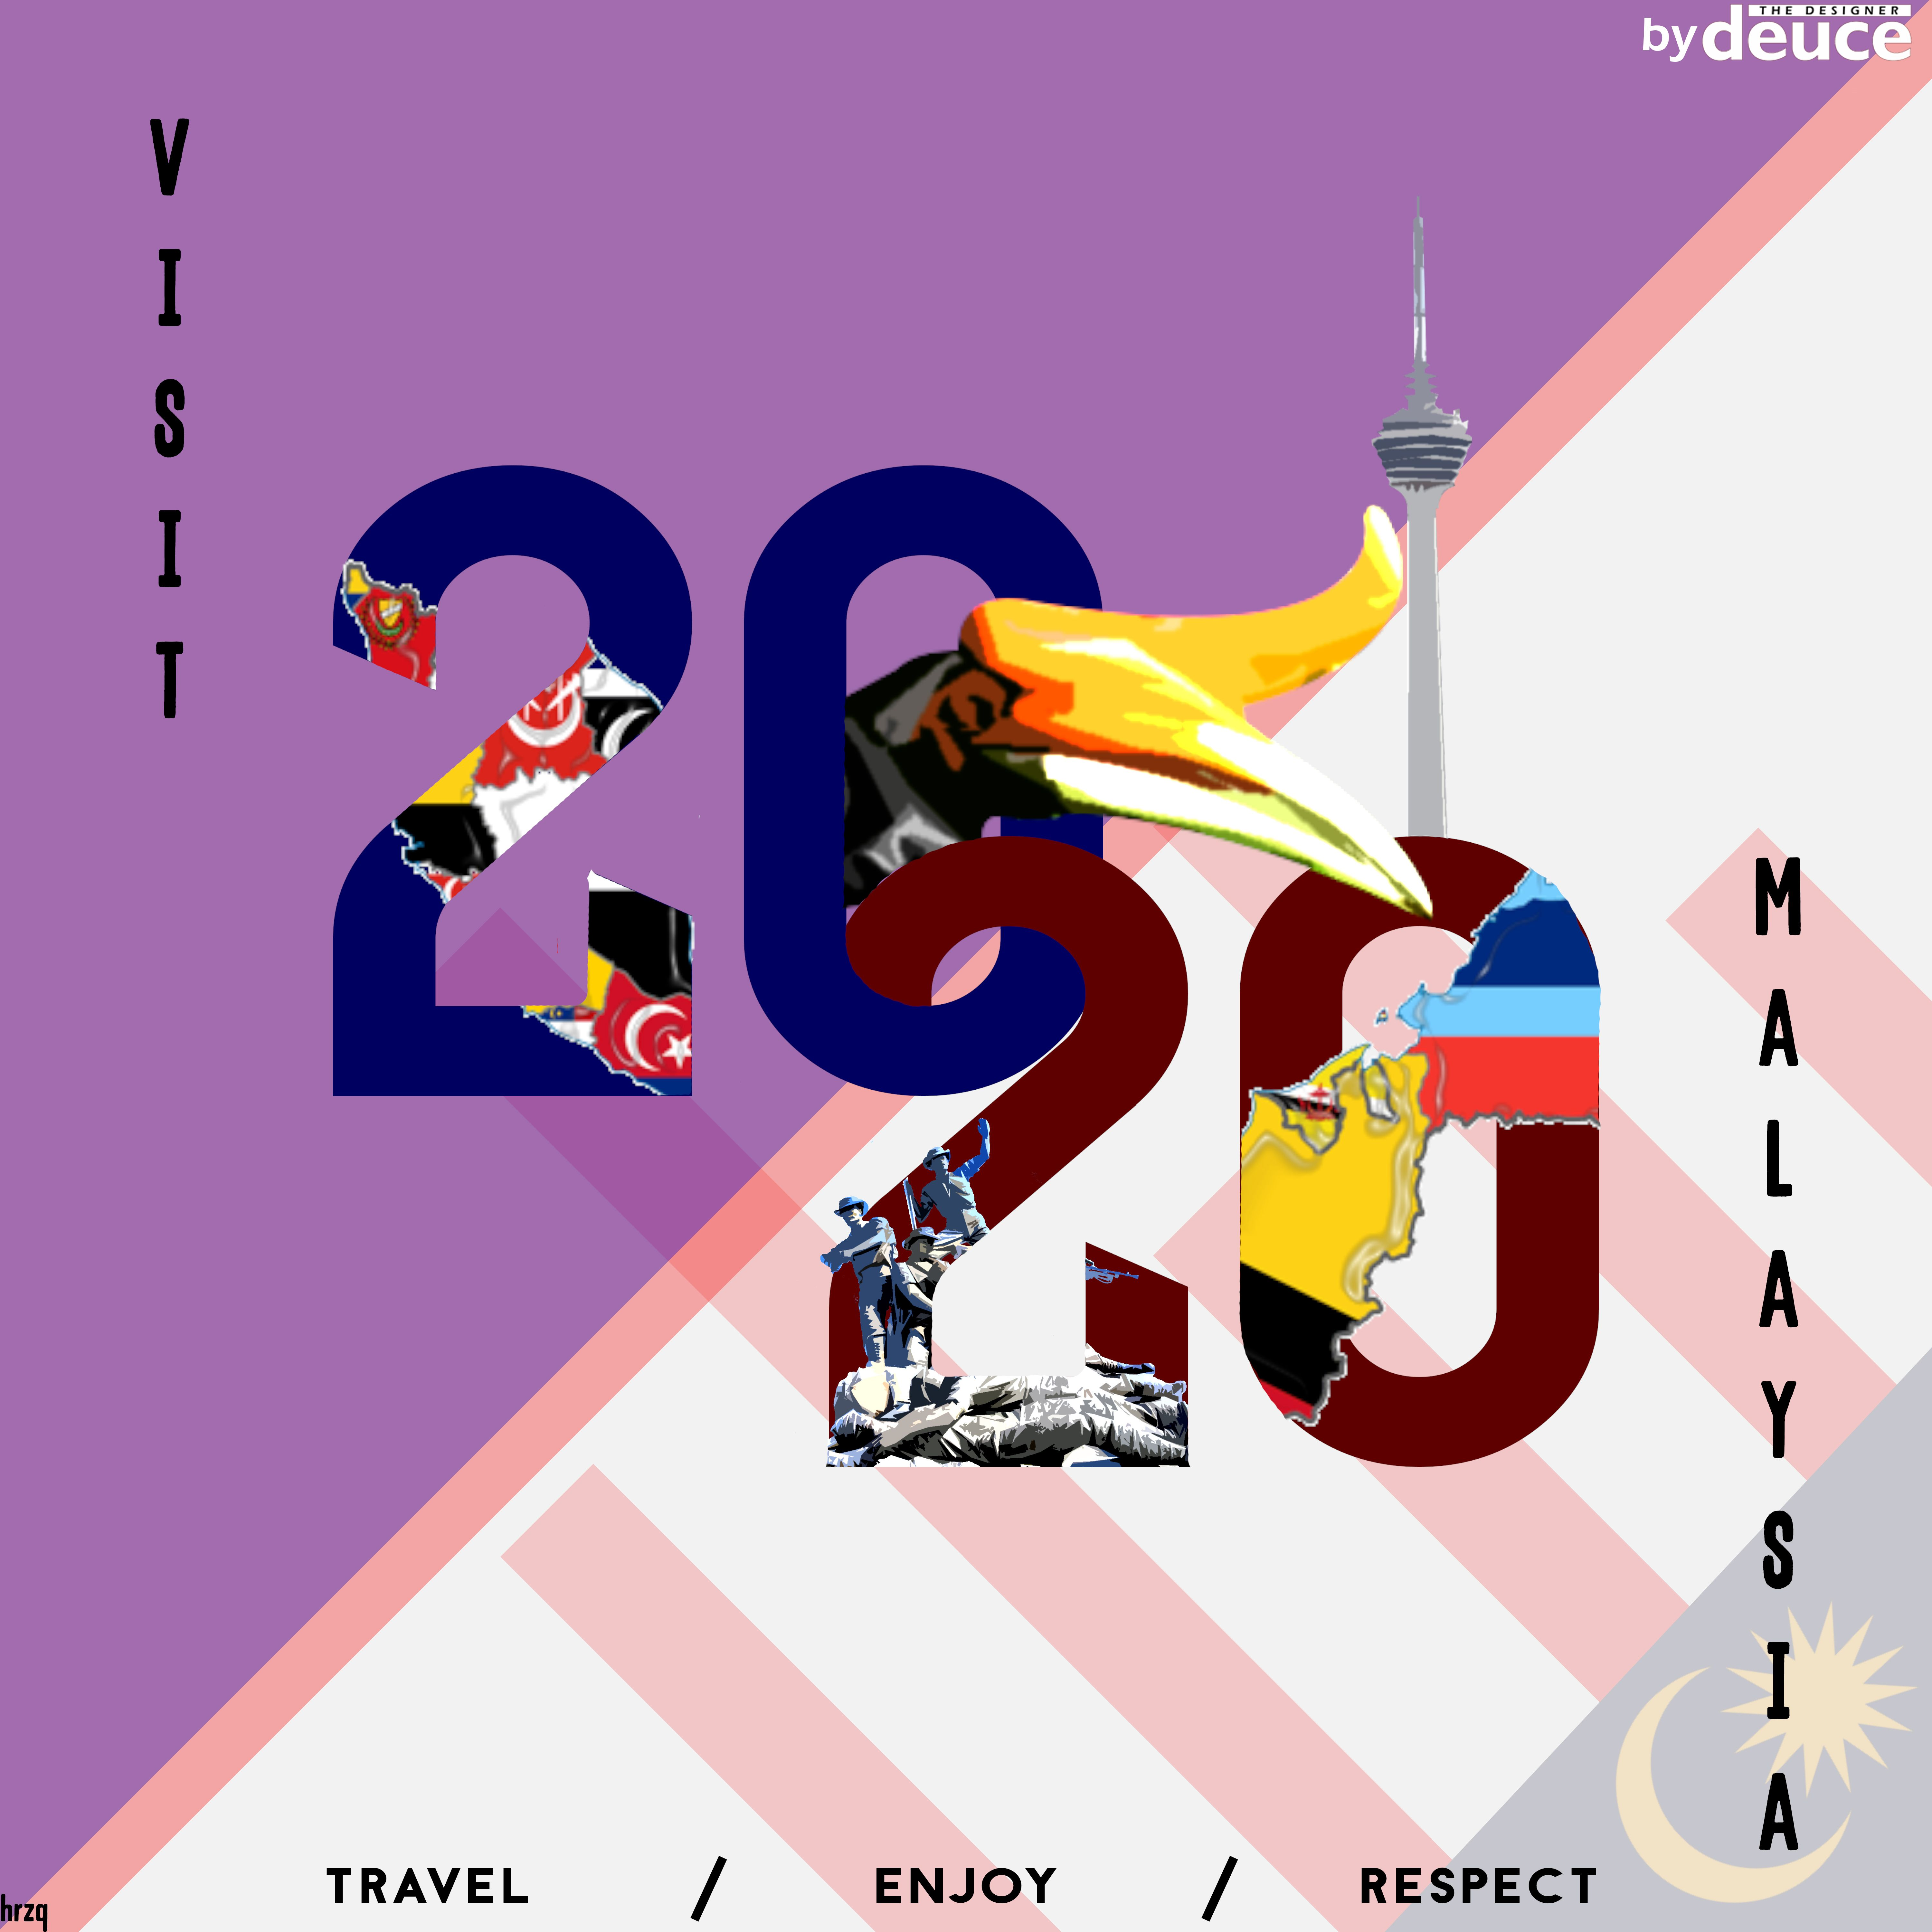 visit malaysia 2020 redesign logo (With images) Tourism